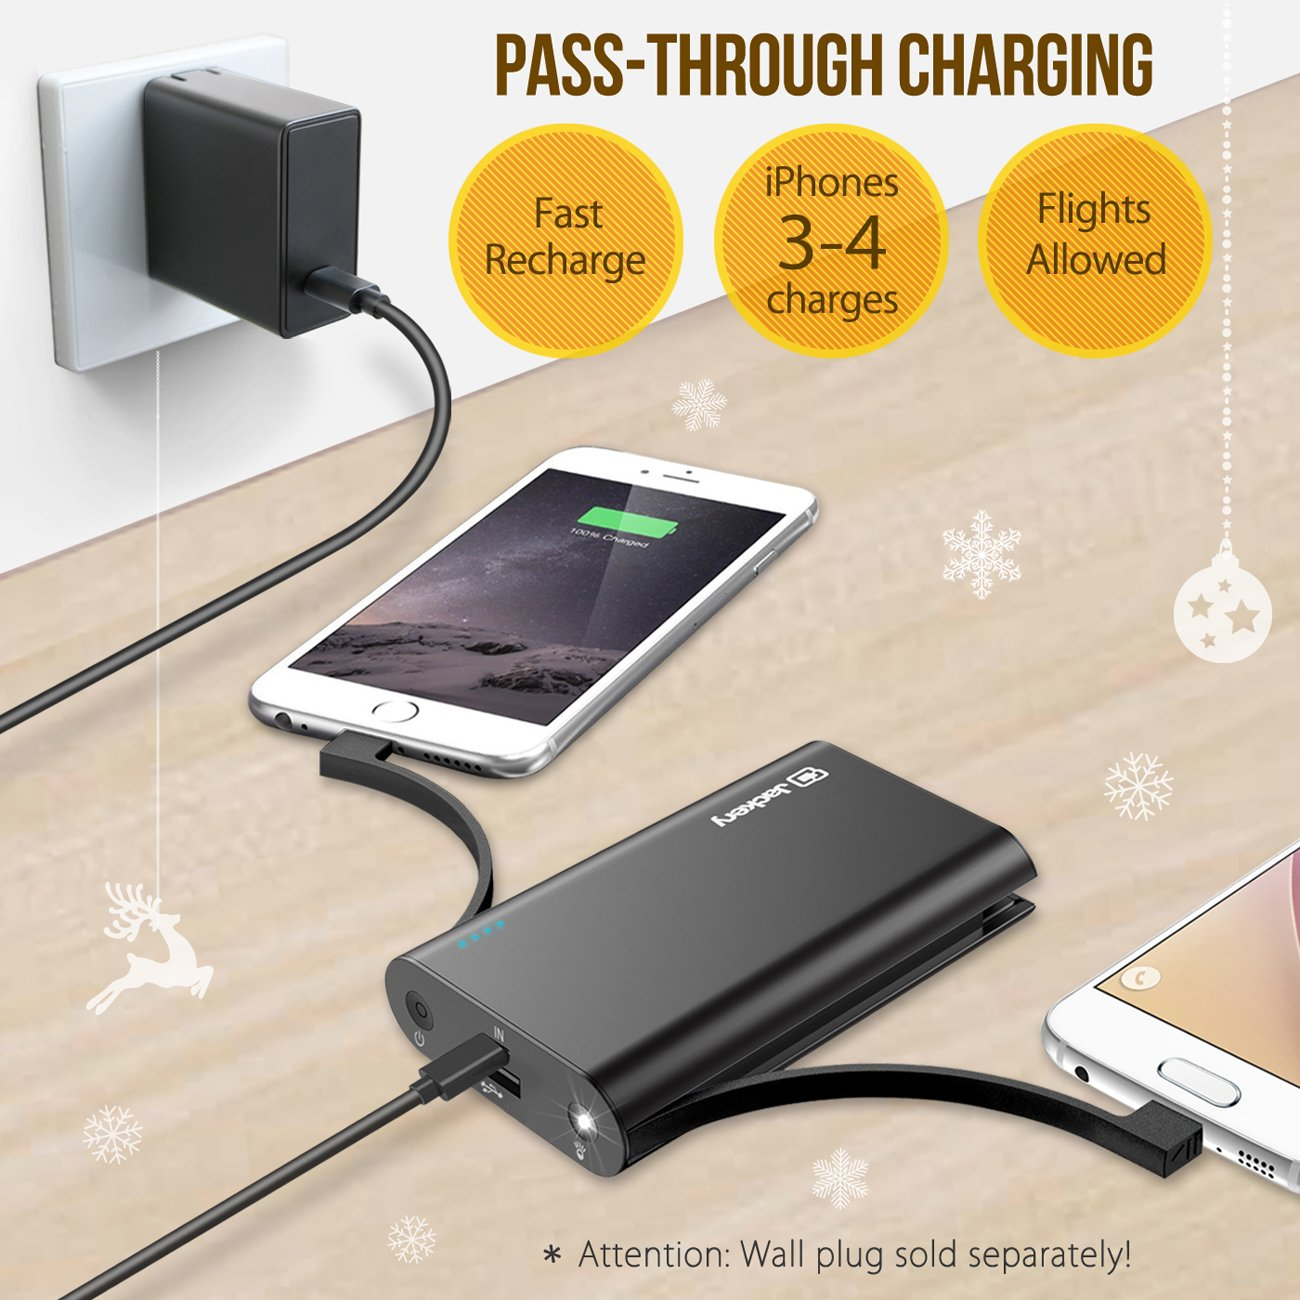 Jackery Bolt 10050mAh Power Bank, Portable Charger with Built-in [MFi certified] Lightning Cable External Battery Pack for iPhone X, iPhone 8/8Plus etc, TWICE as FAST as Original iPhone Charger by Jackery (Image #5)